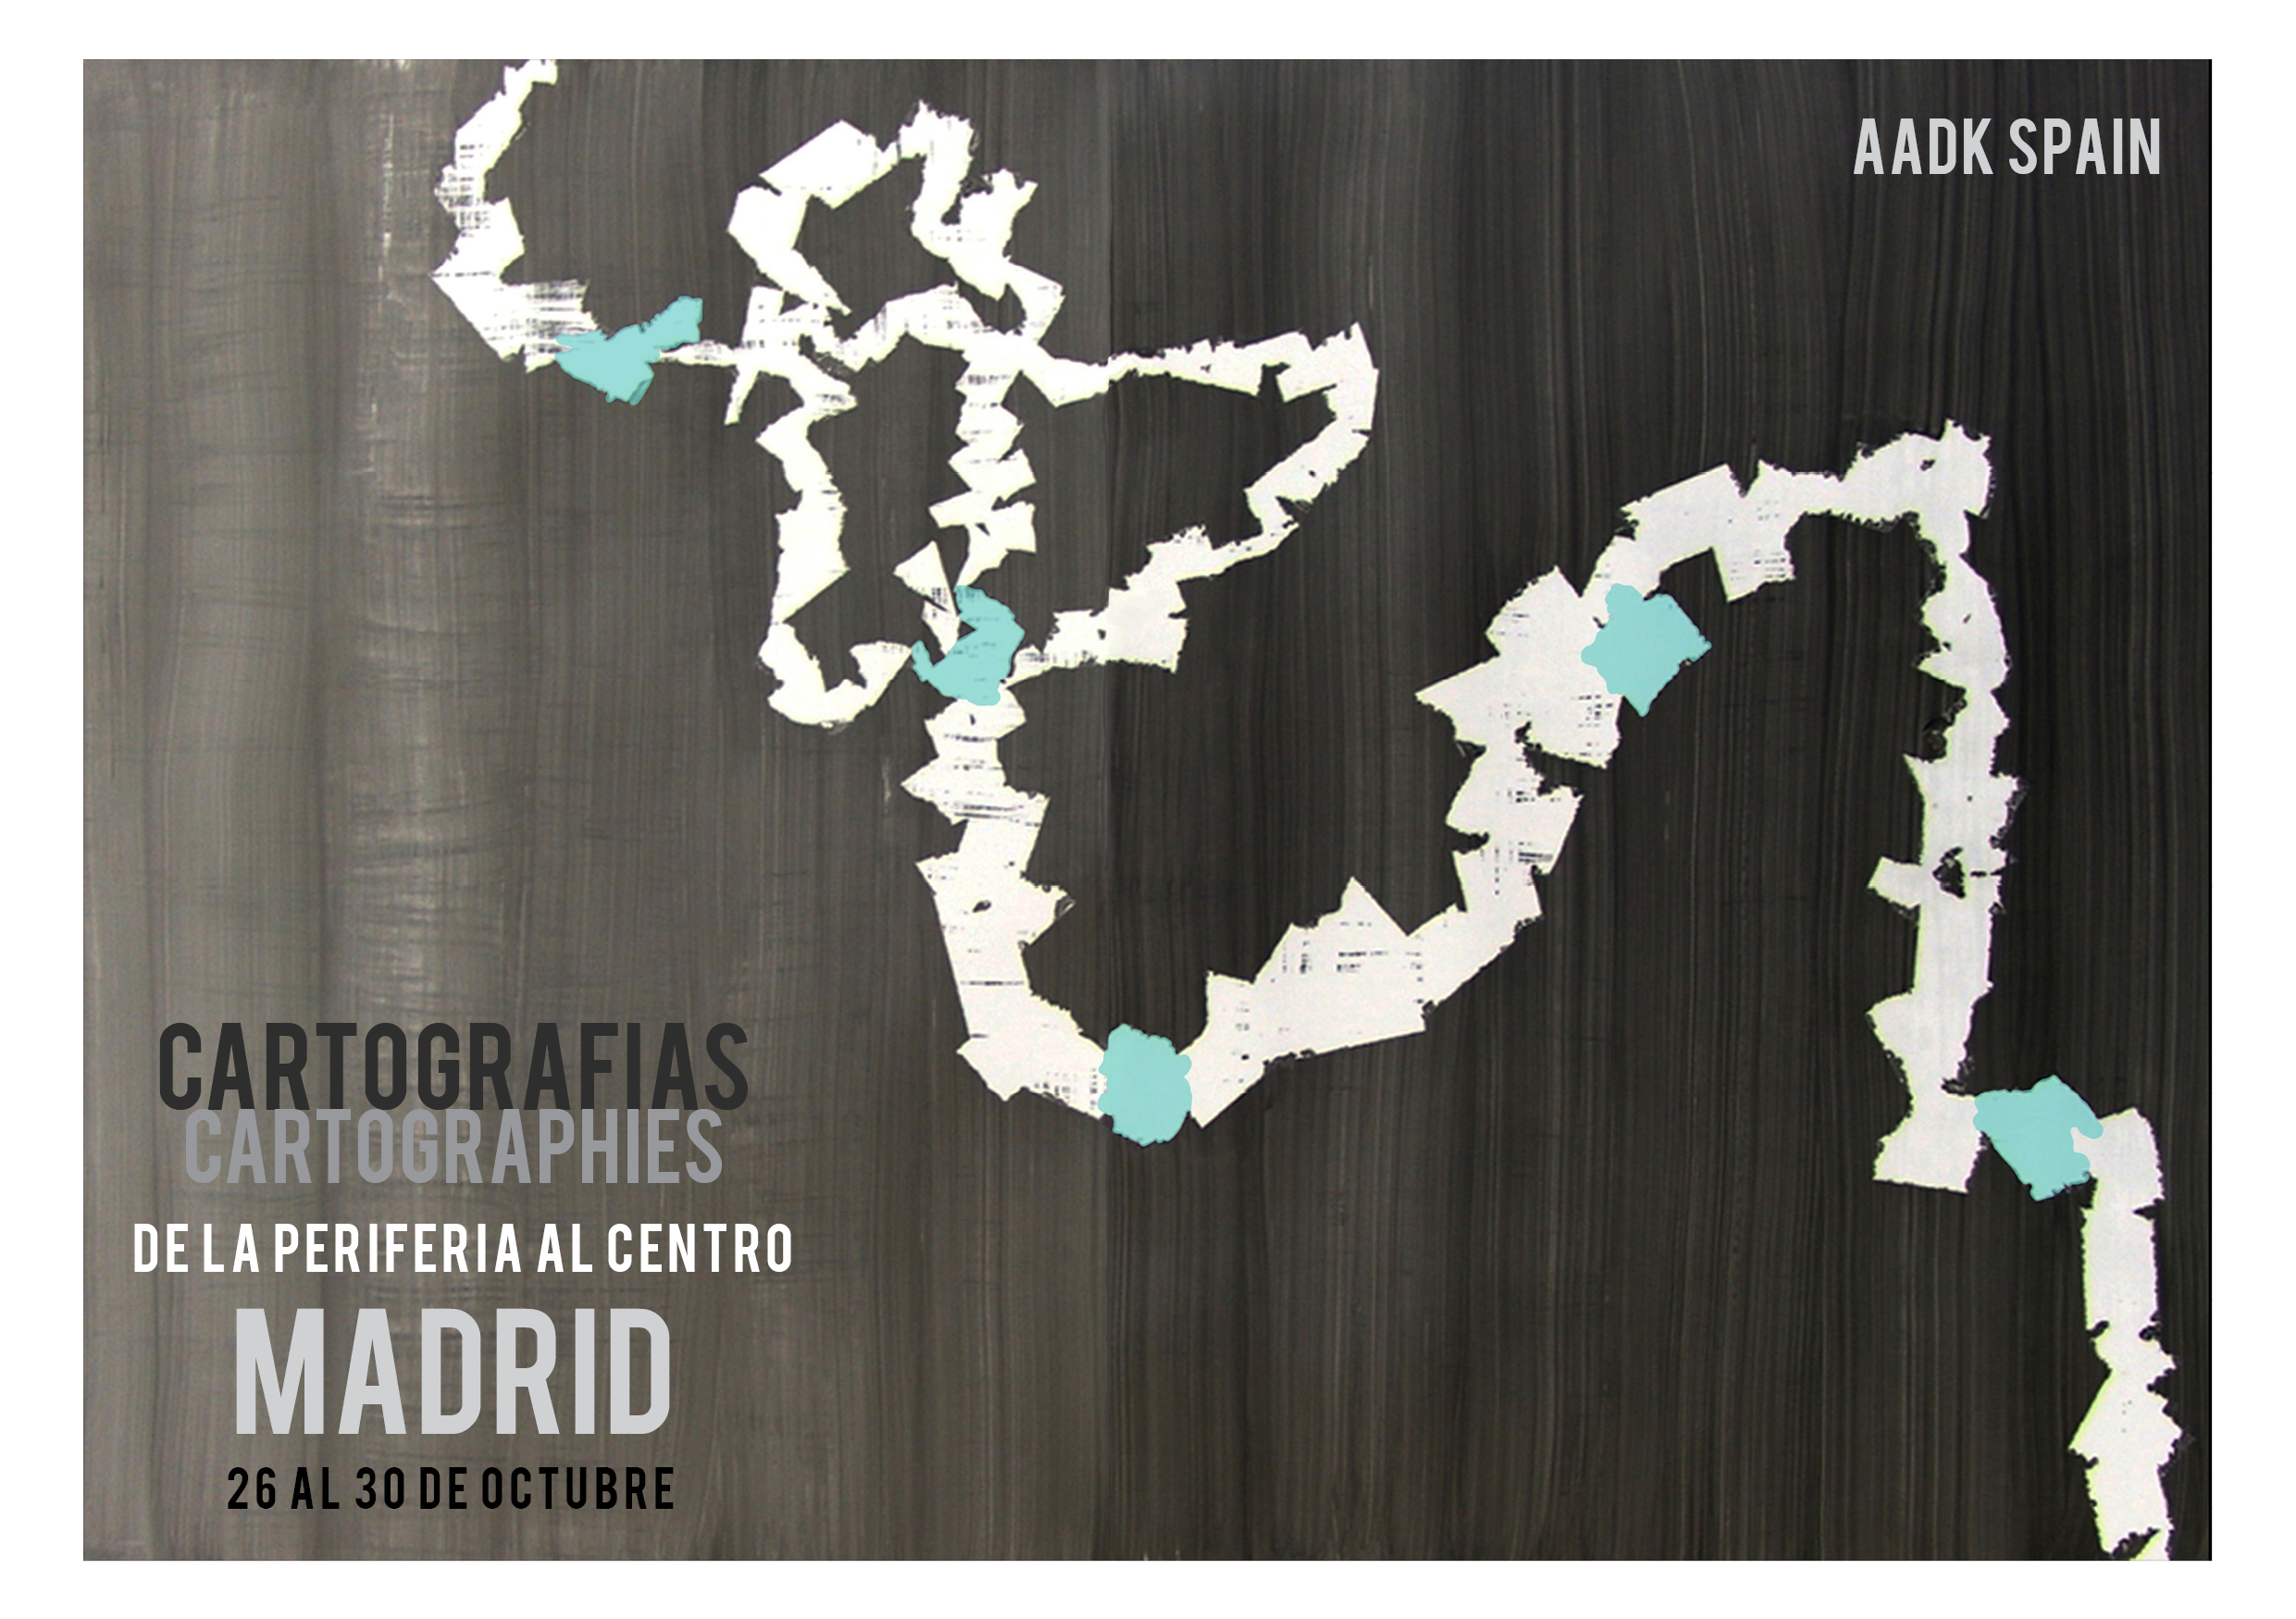 Cartographies Madrid front page postcard